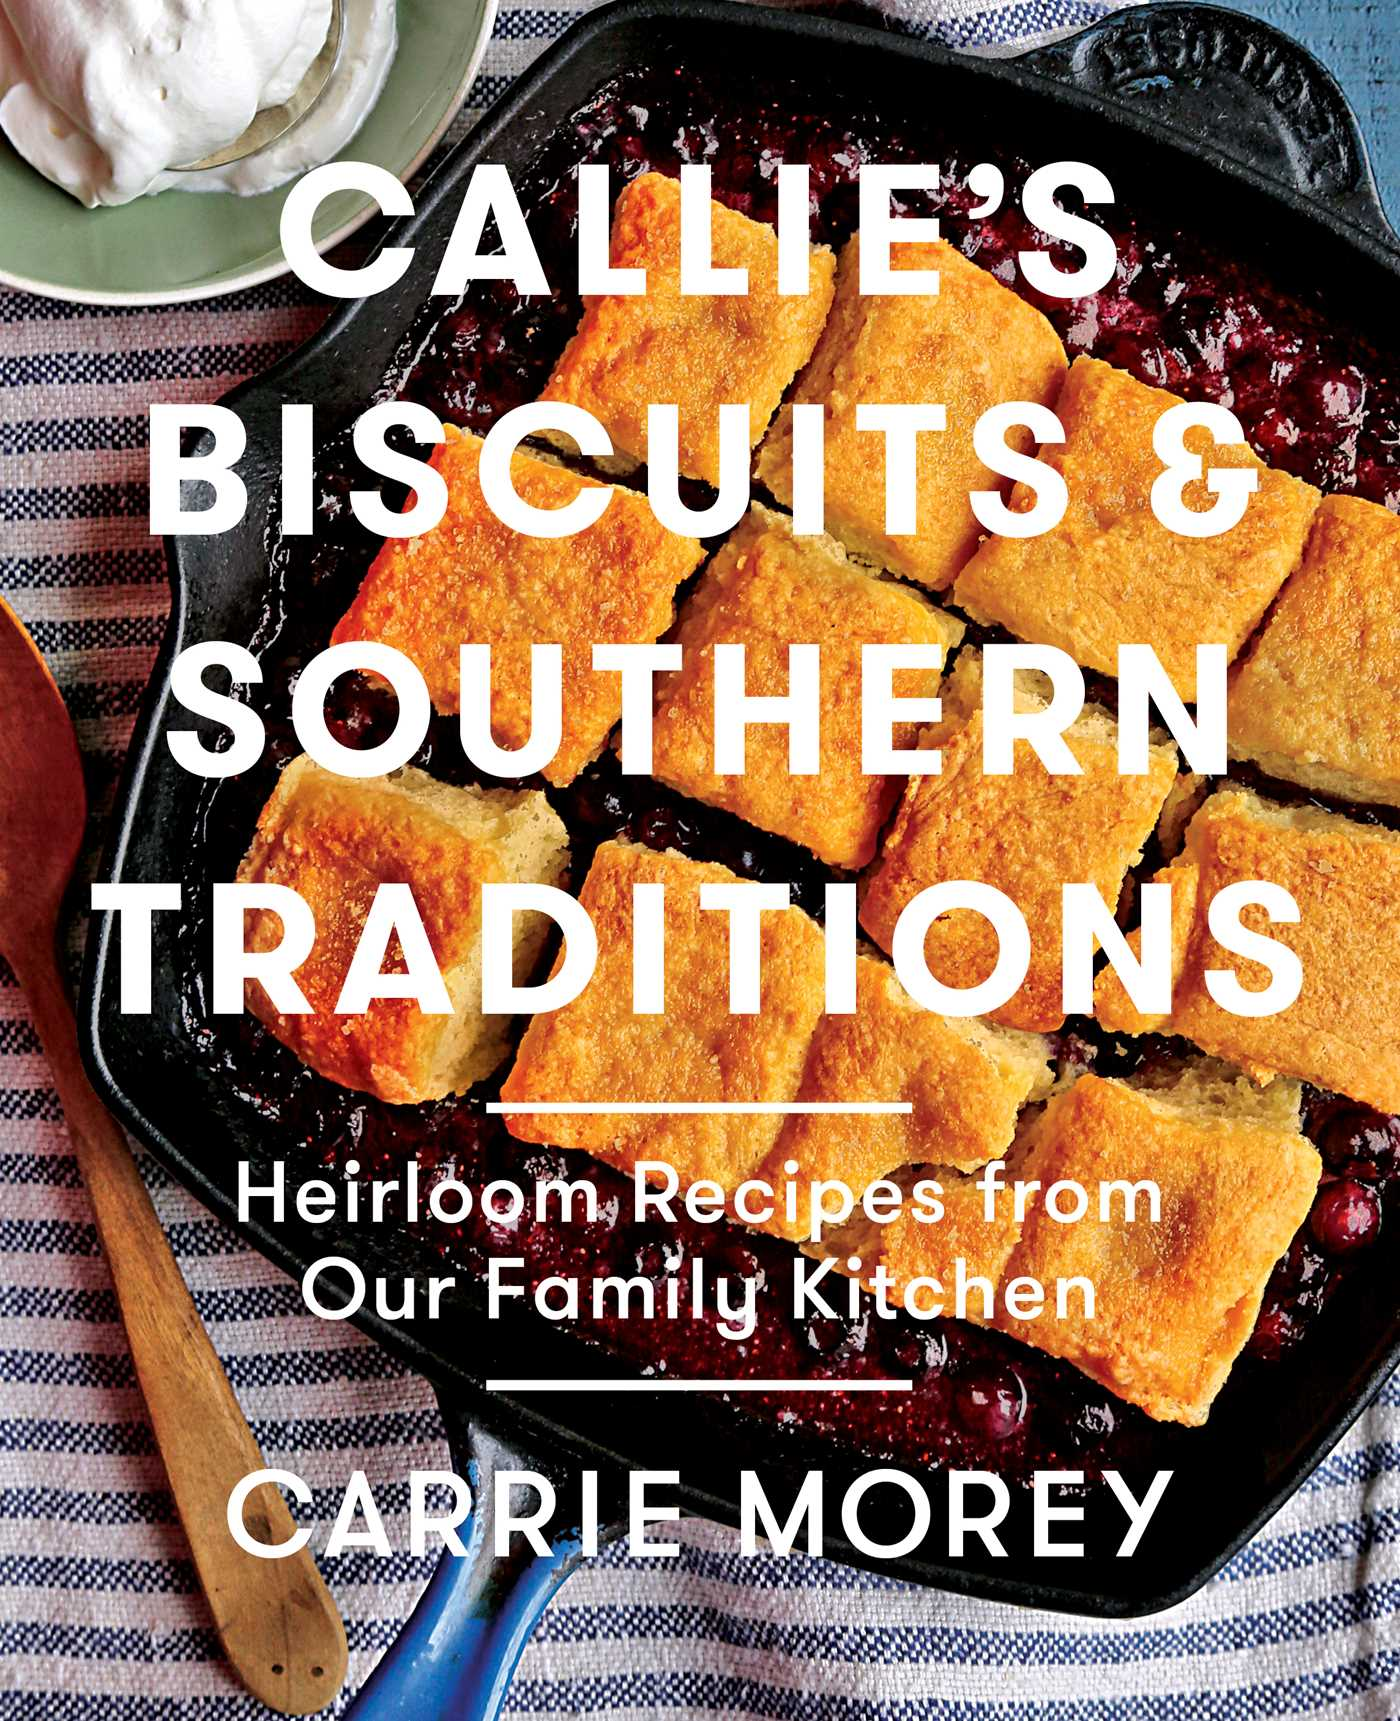 Callies biscuits and southern traditions 9781476713212 hr